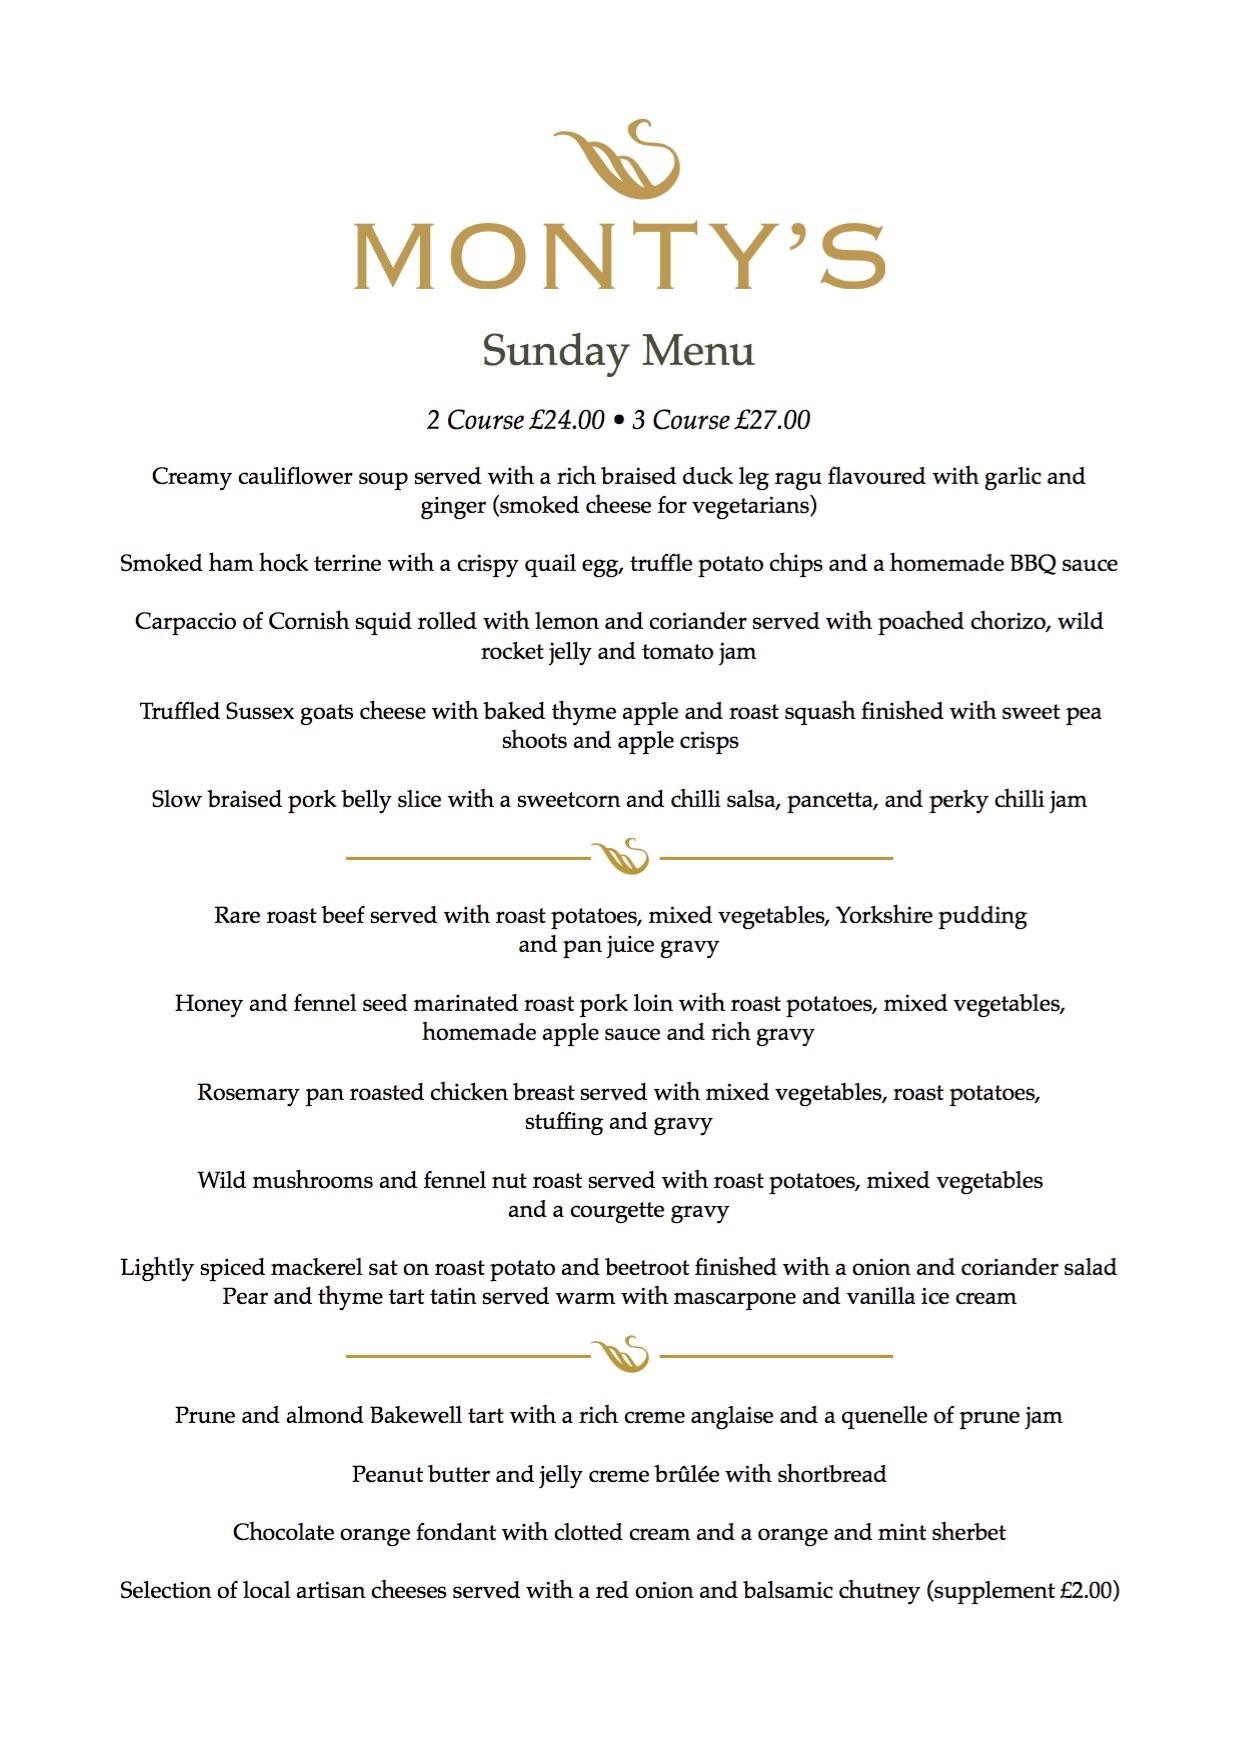 Sunday Menu A4.jpg